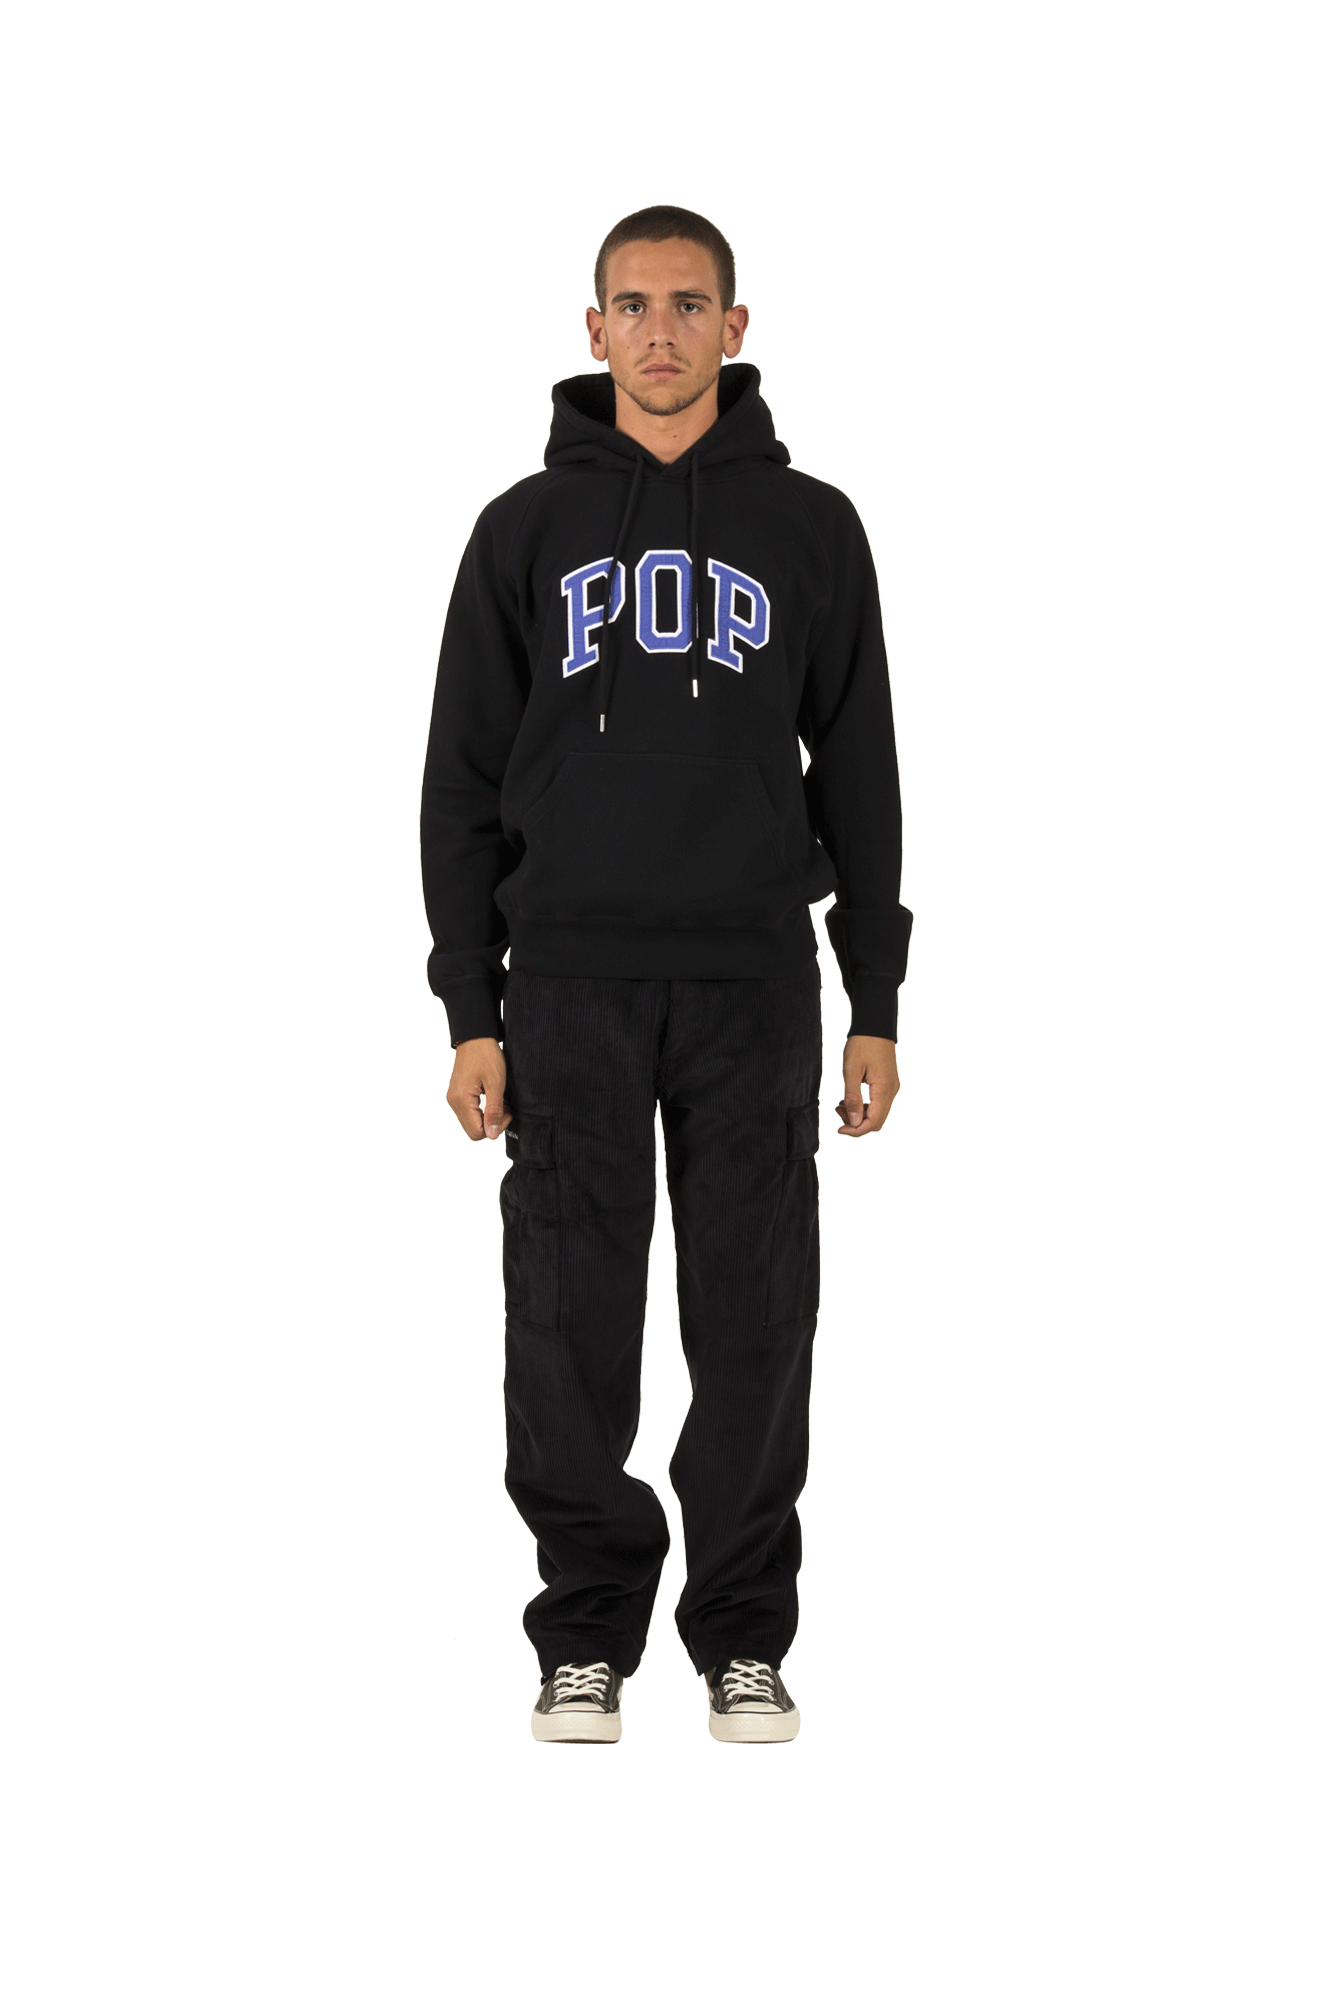 Pop Trading Company Felpe Arch Hooded Sweat Nero Nero 01-002#000#BLK#S - One Block Down